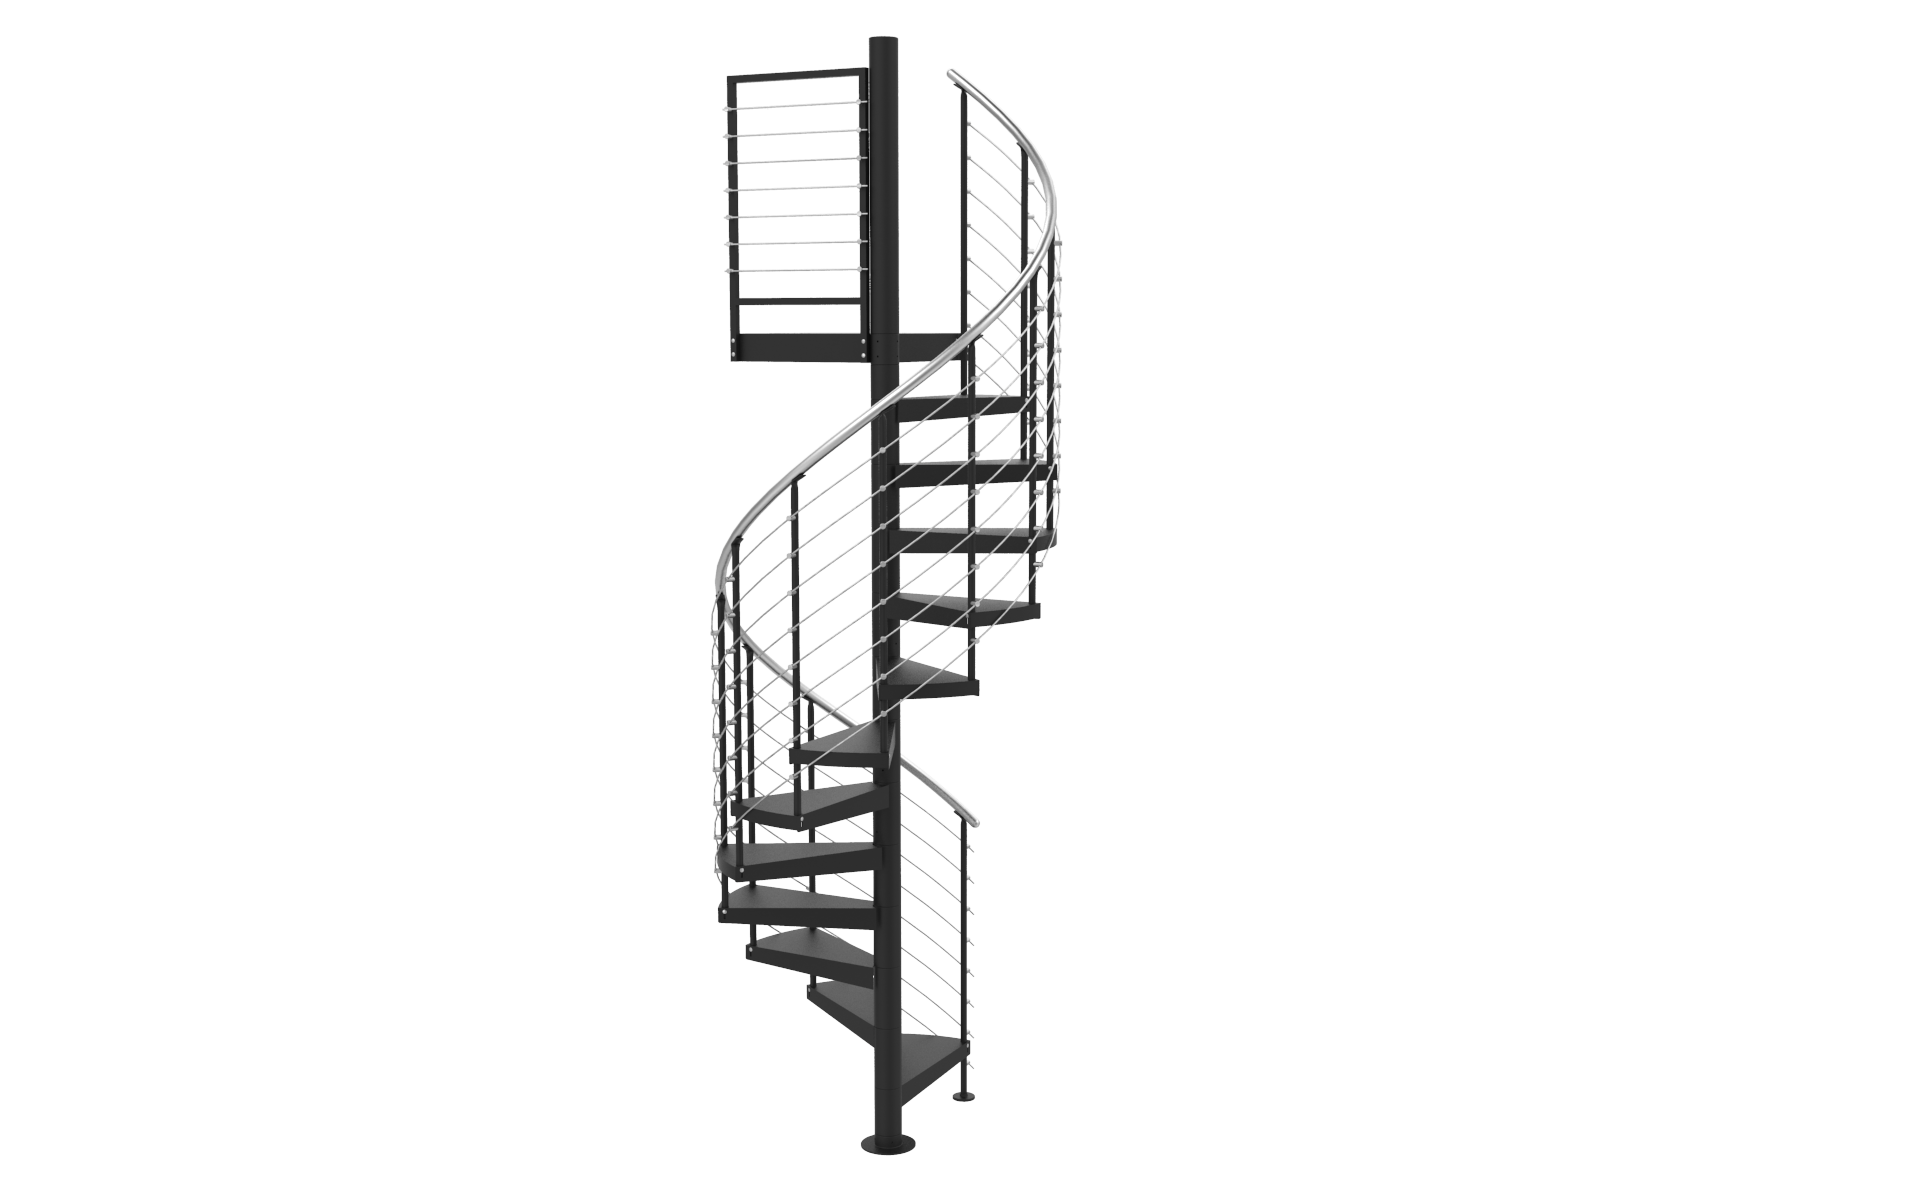 Curved Stairs Transparent & PNG Clipart Free Download - YA-webdesign